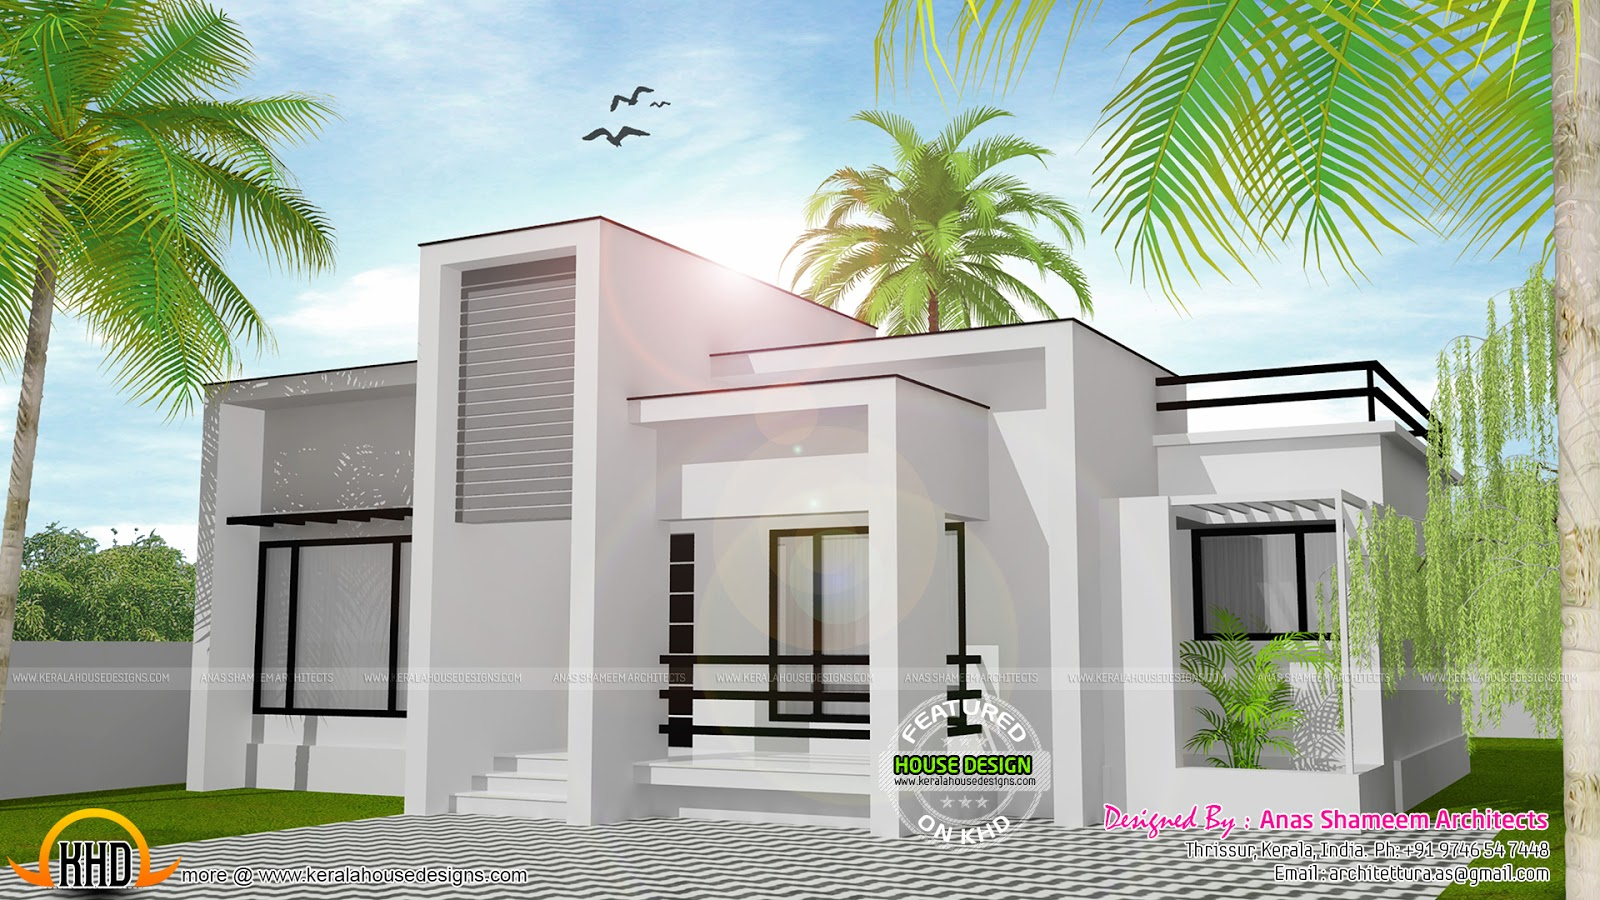 978 sq ft flat roof single floor home kerala home design for Low cost house plans with photos